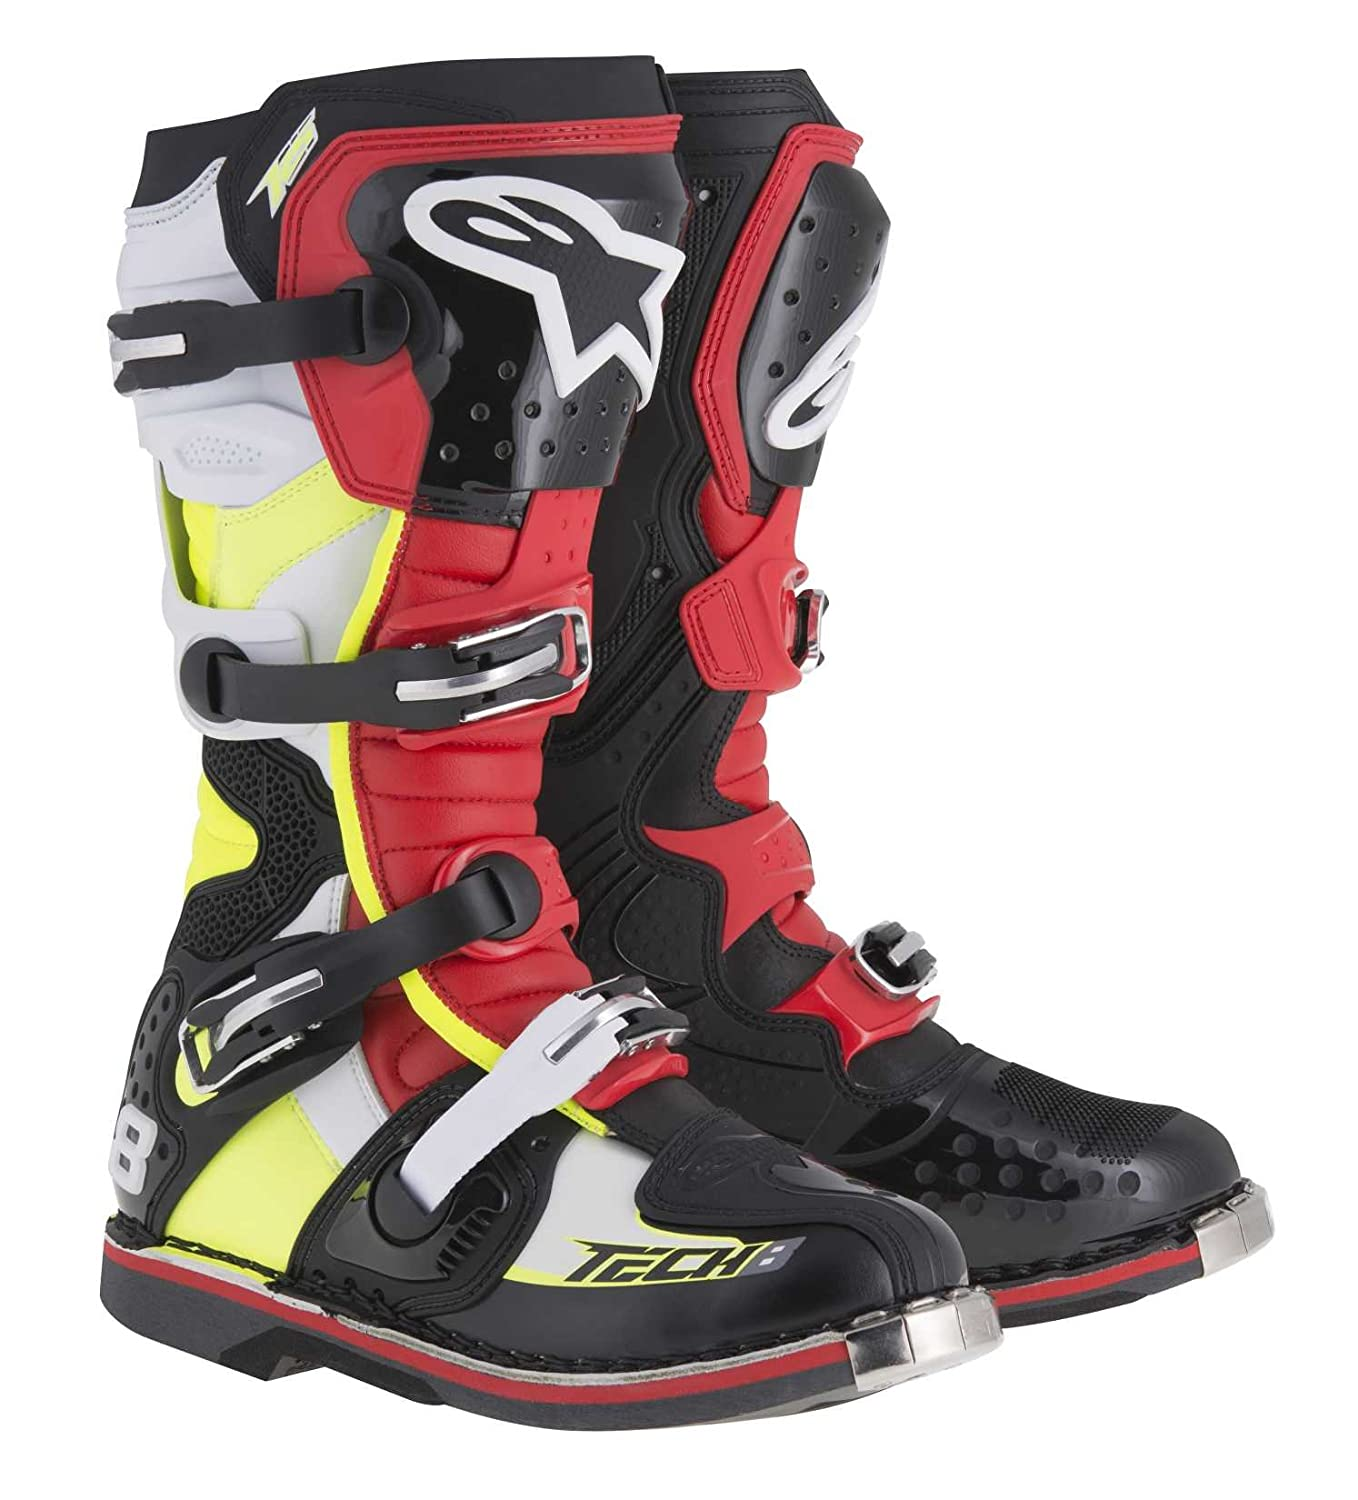 Black//Red//Yellow//White, Size 15 Alpinestars Unisex-Adult Tech 8 RS Boots 2011015-1362-15